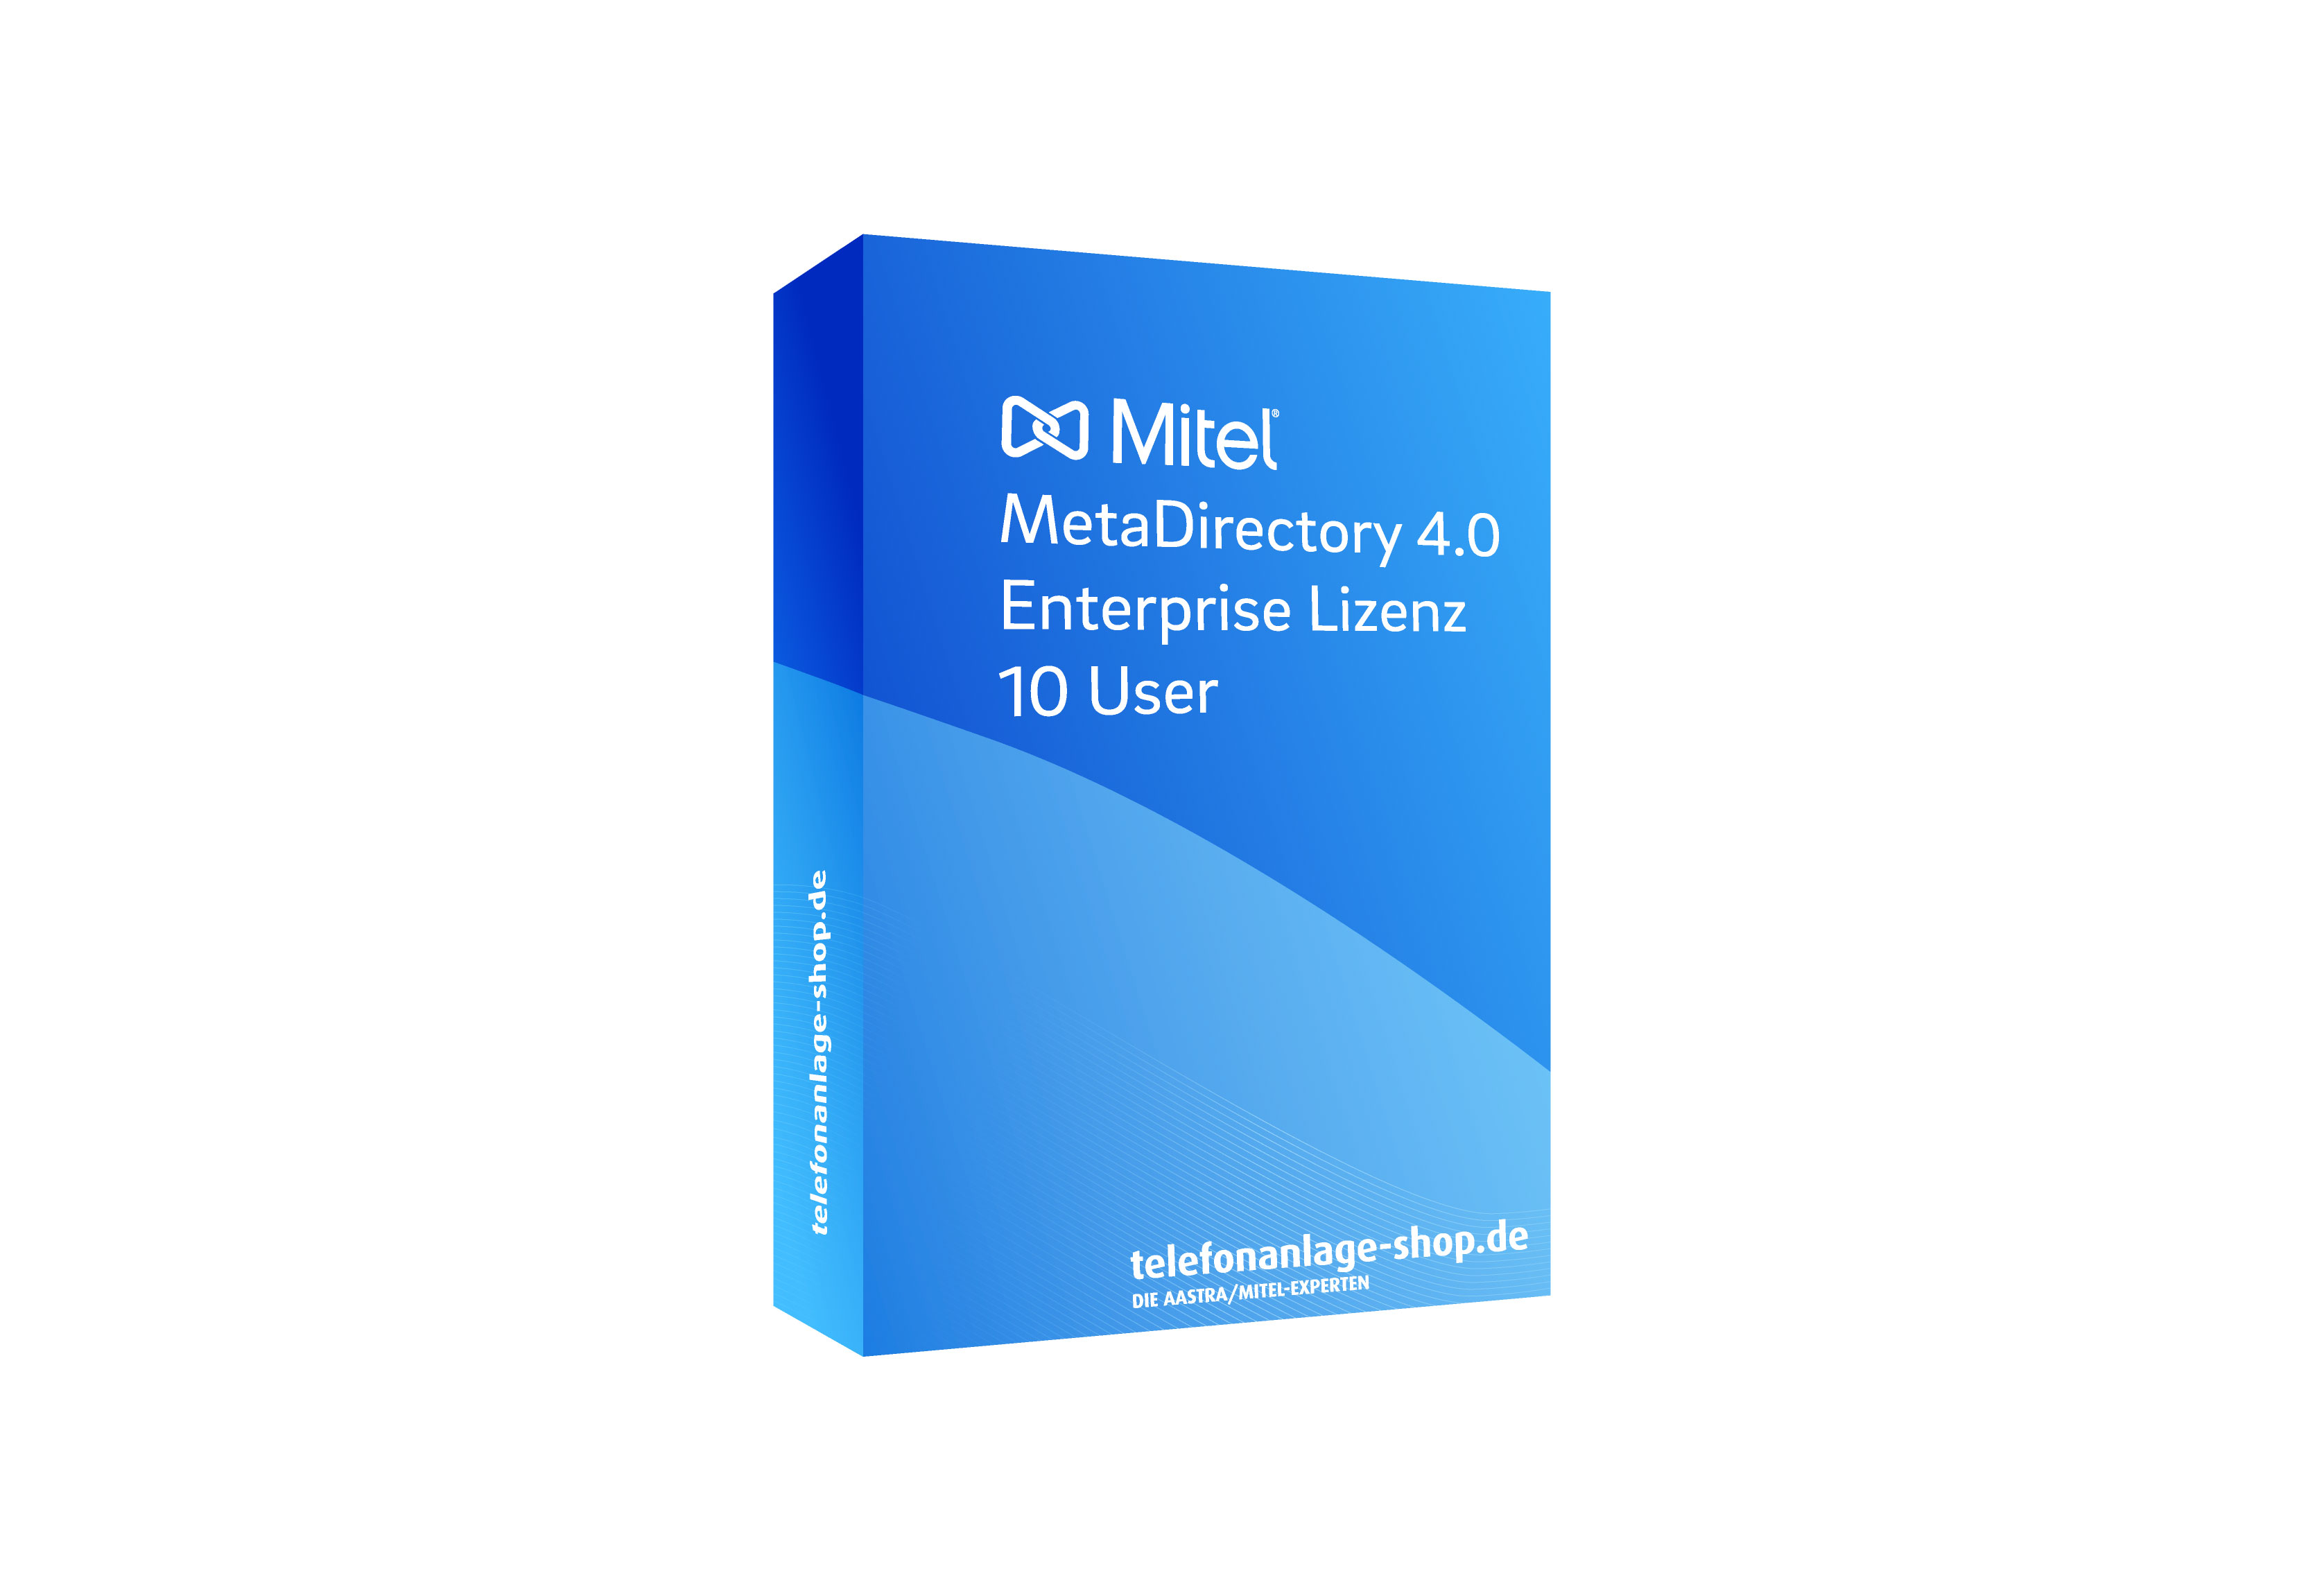 Produktbild - Mitel MetaDirectory 4.0 Enterprise Lizenz 10 User